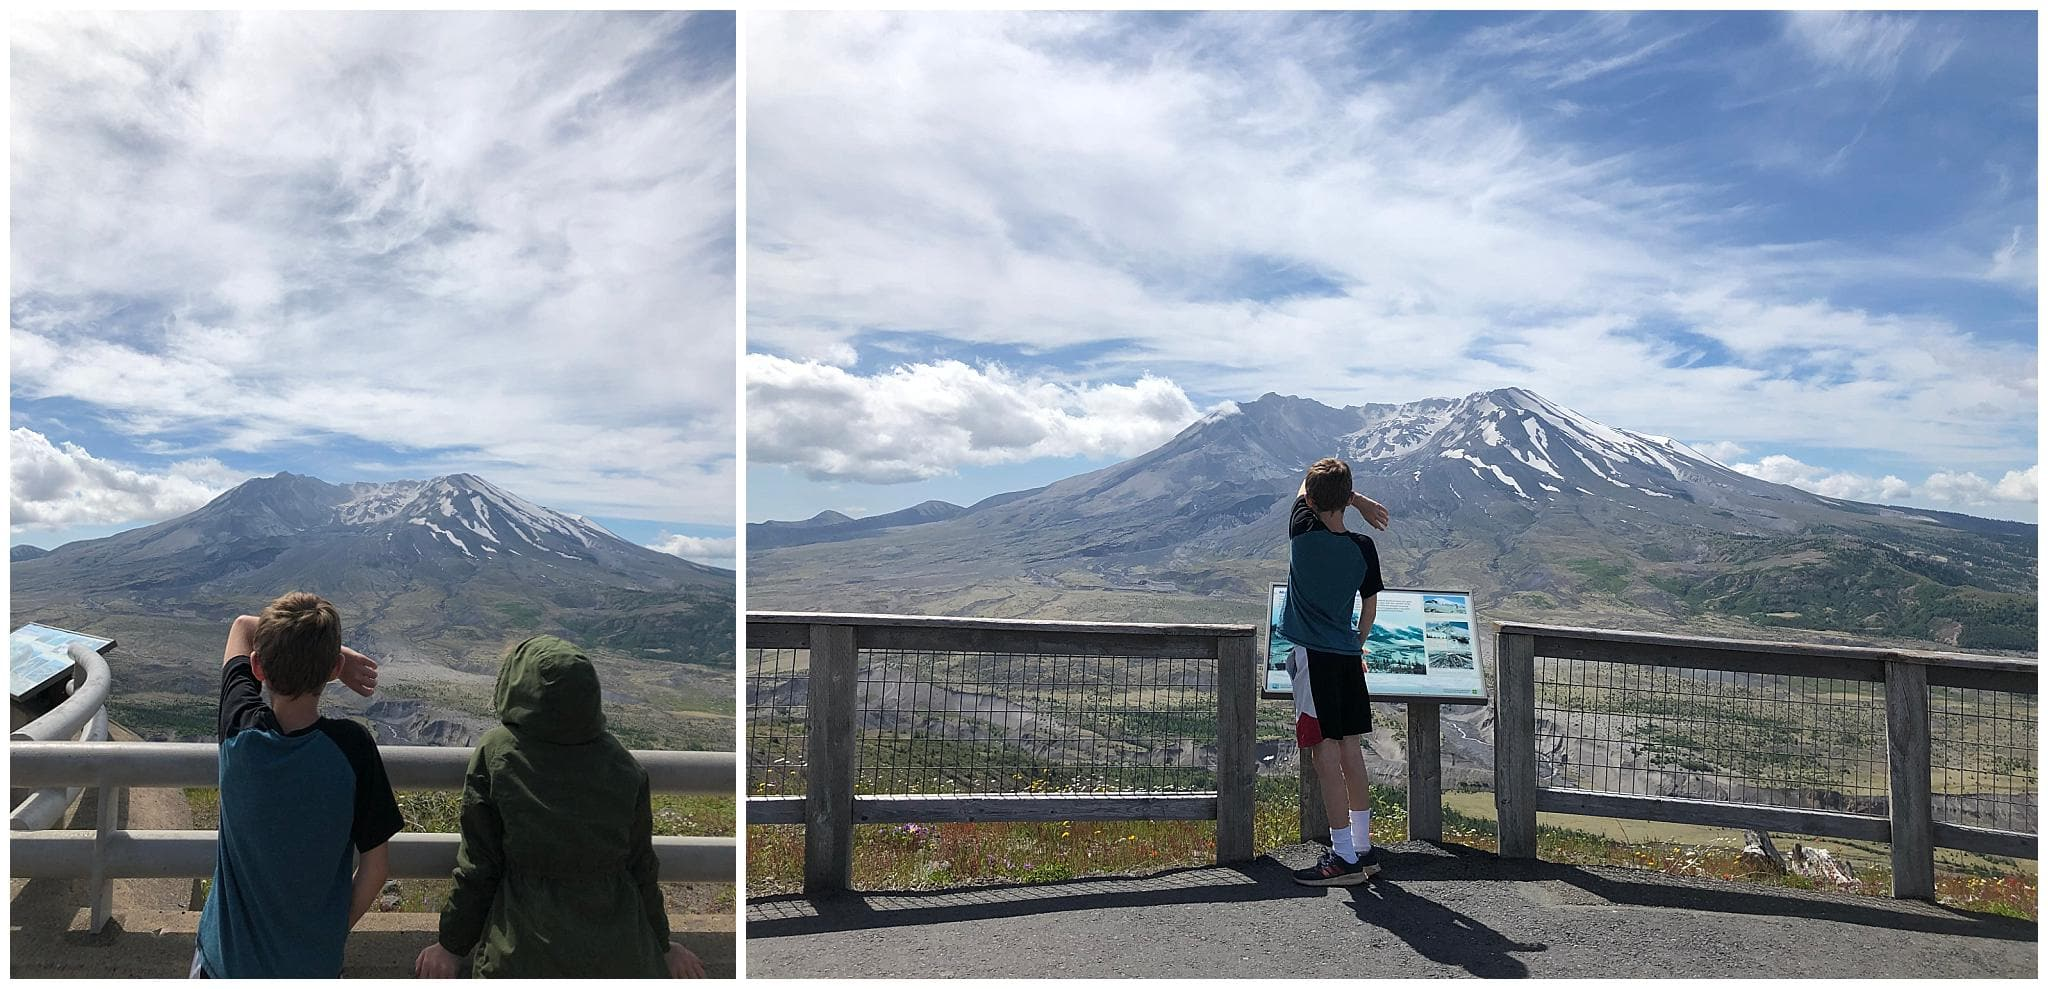 Day trip with my family to see mount saint helens - kids looking at the mountain